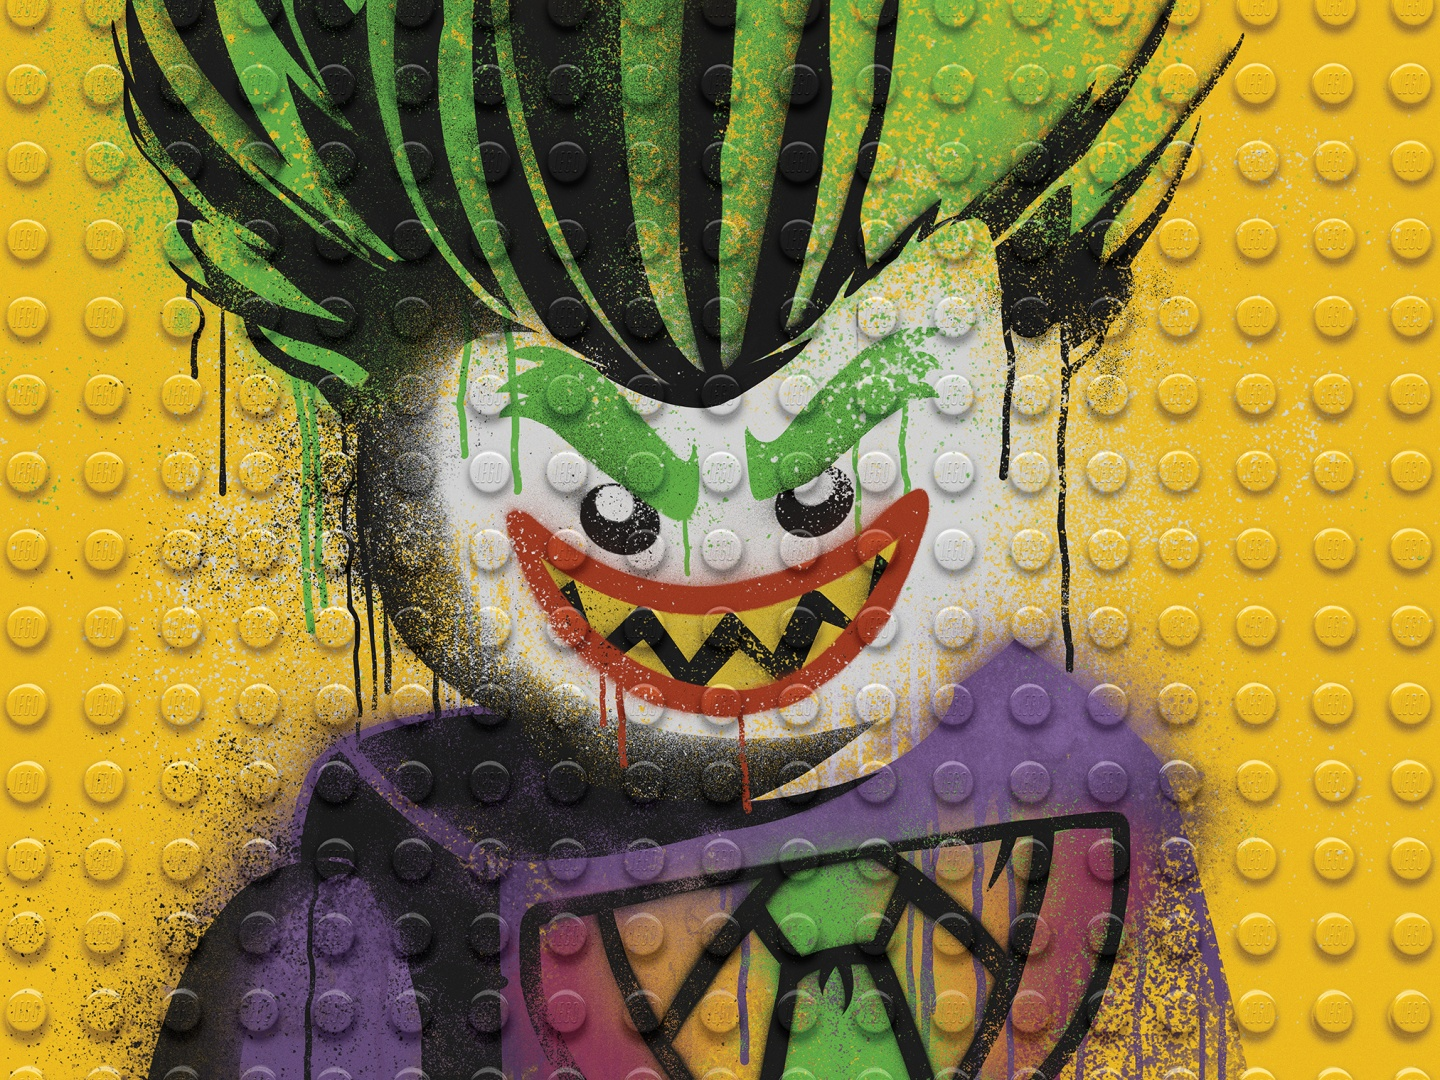 The LEGO Batman Movie - Graffiti Wild Postings | The Joker Thumbnail